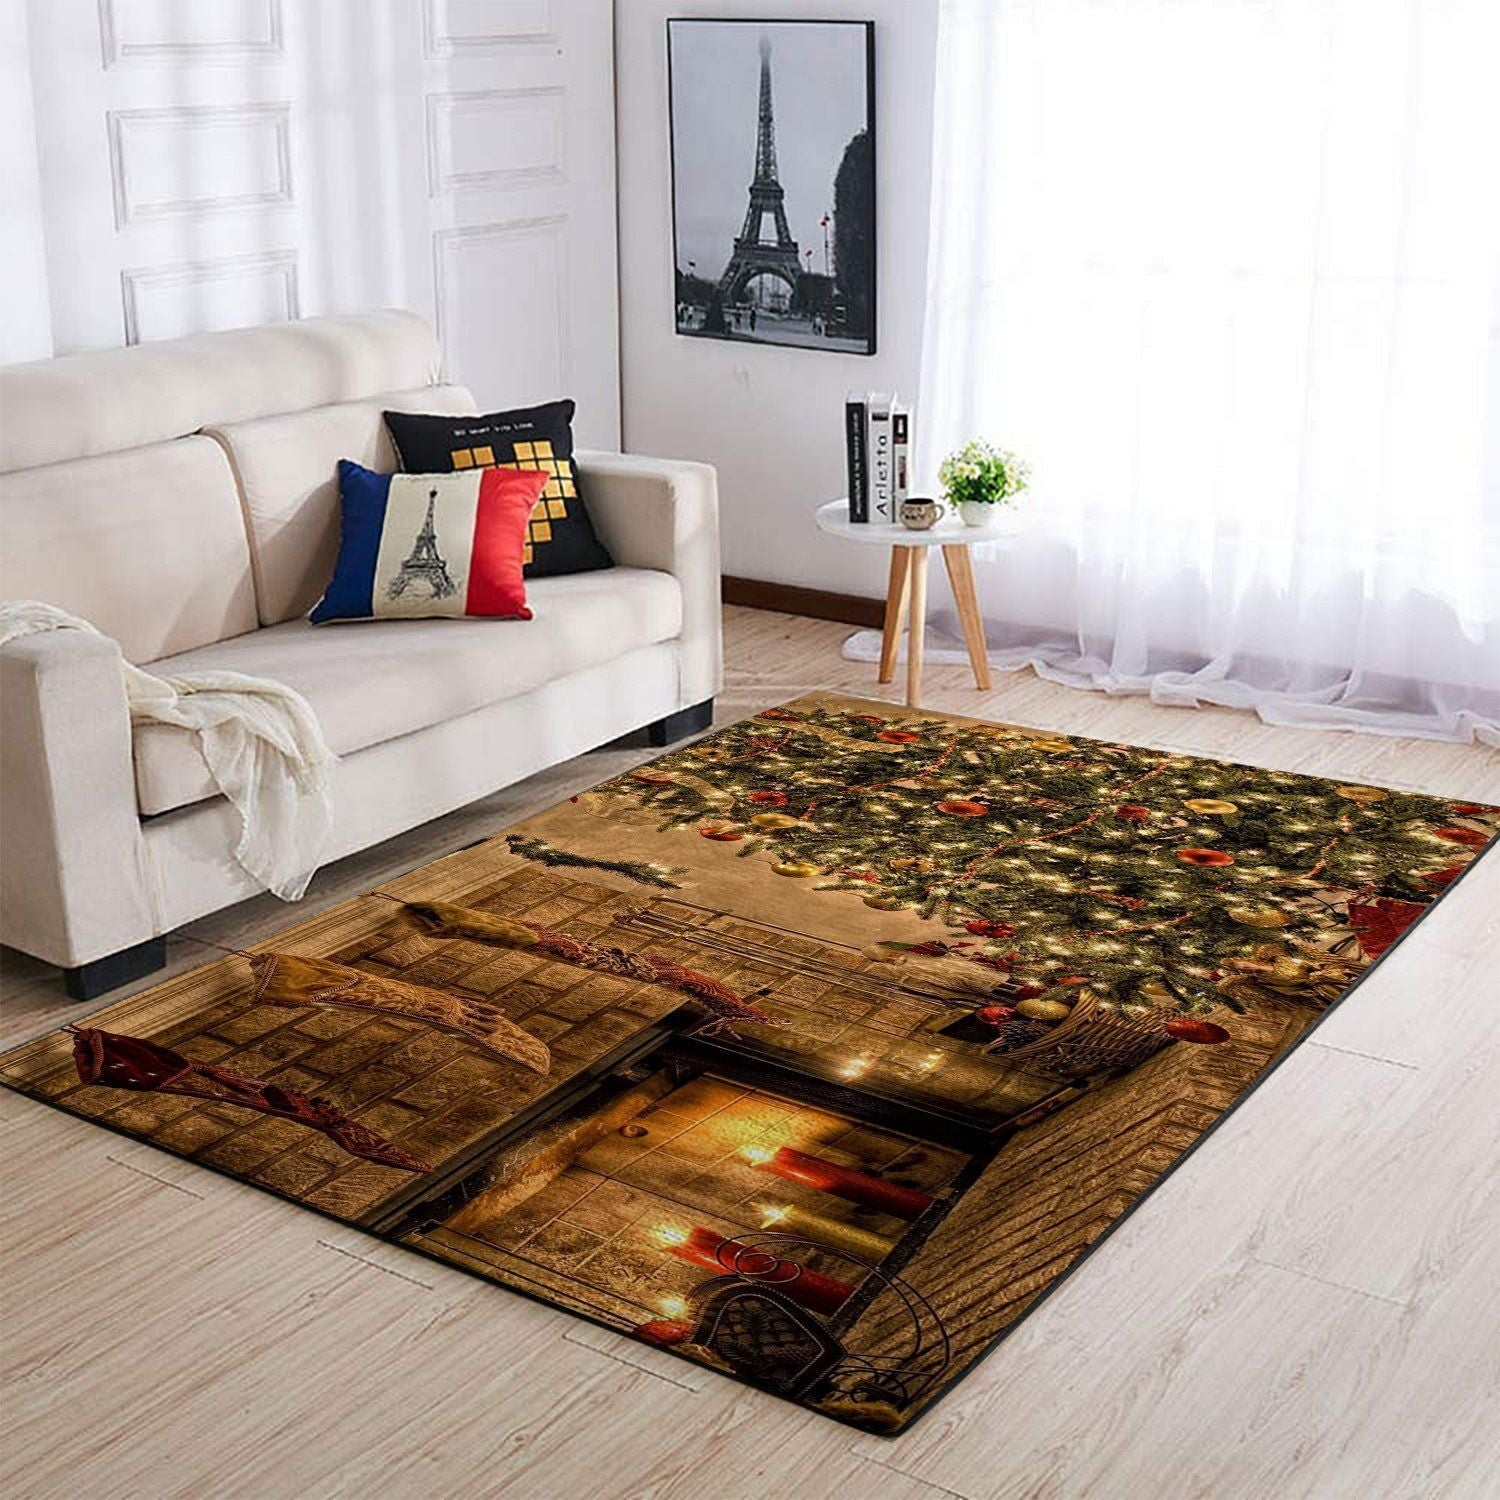 Christmas Tree Area Rug / 1910035 OFD